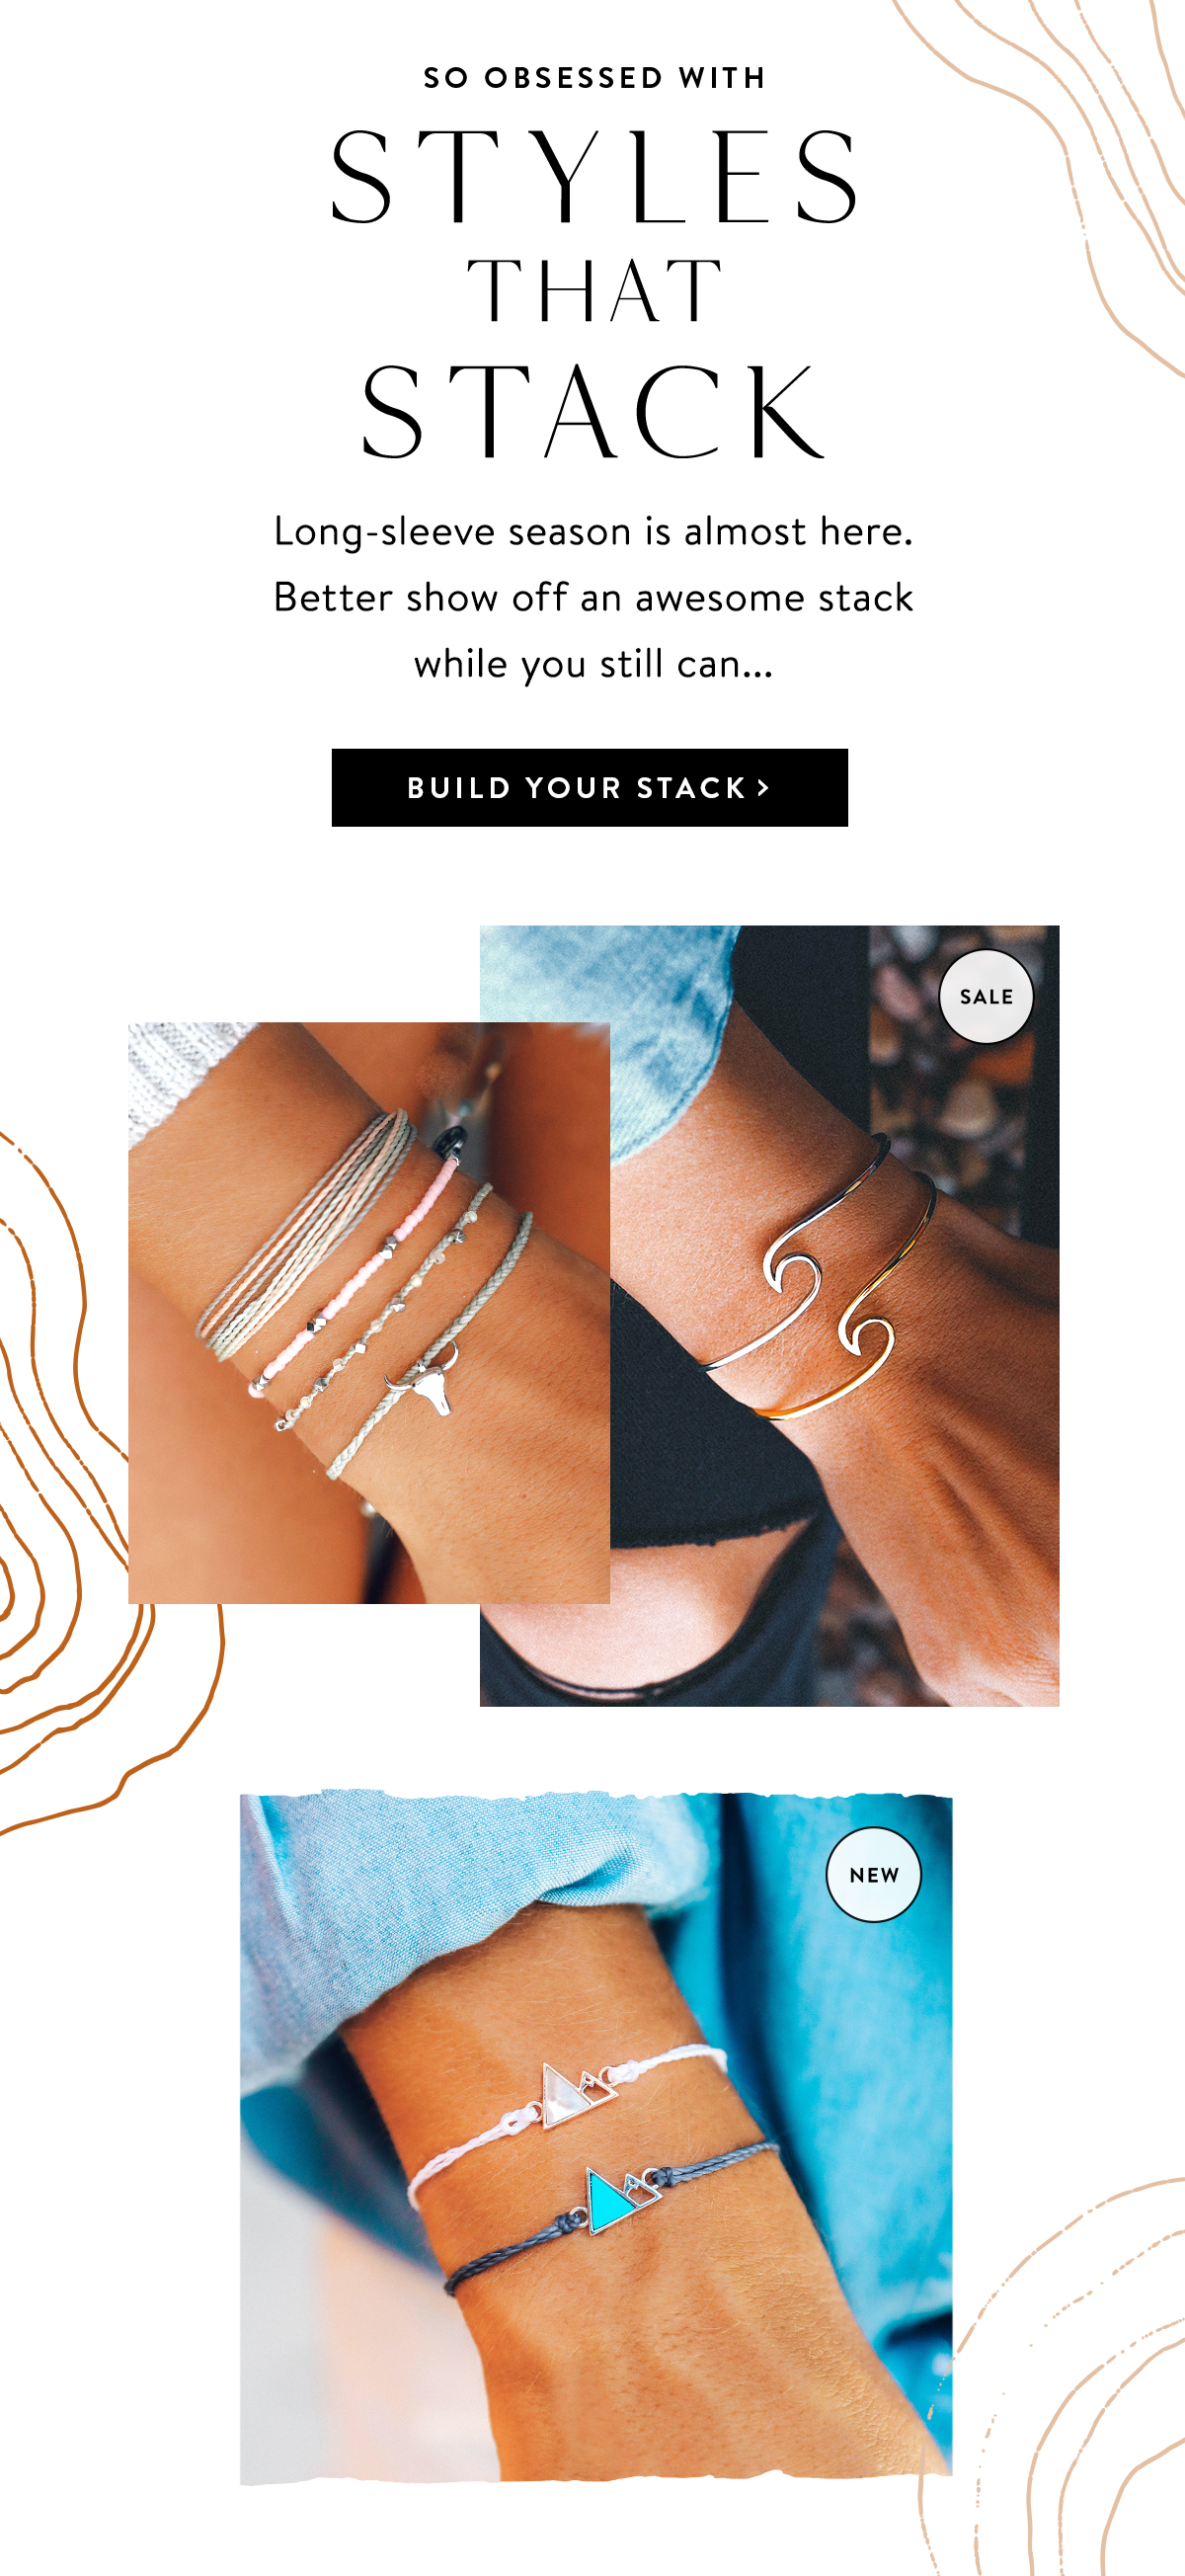 So Obsessed with Style that Stacks | BUILD YOUR STACK >